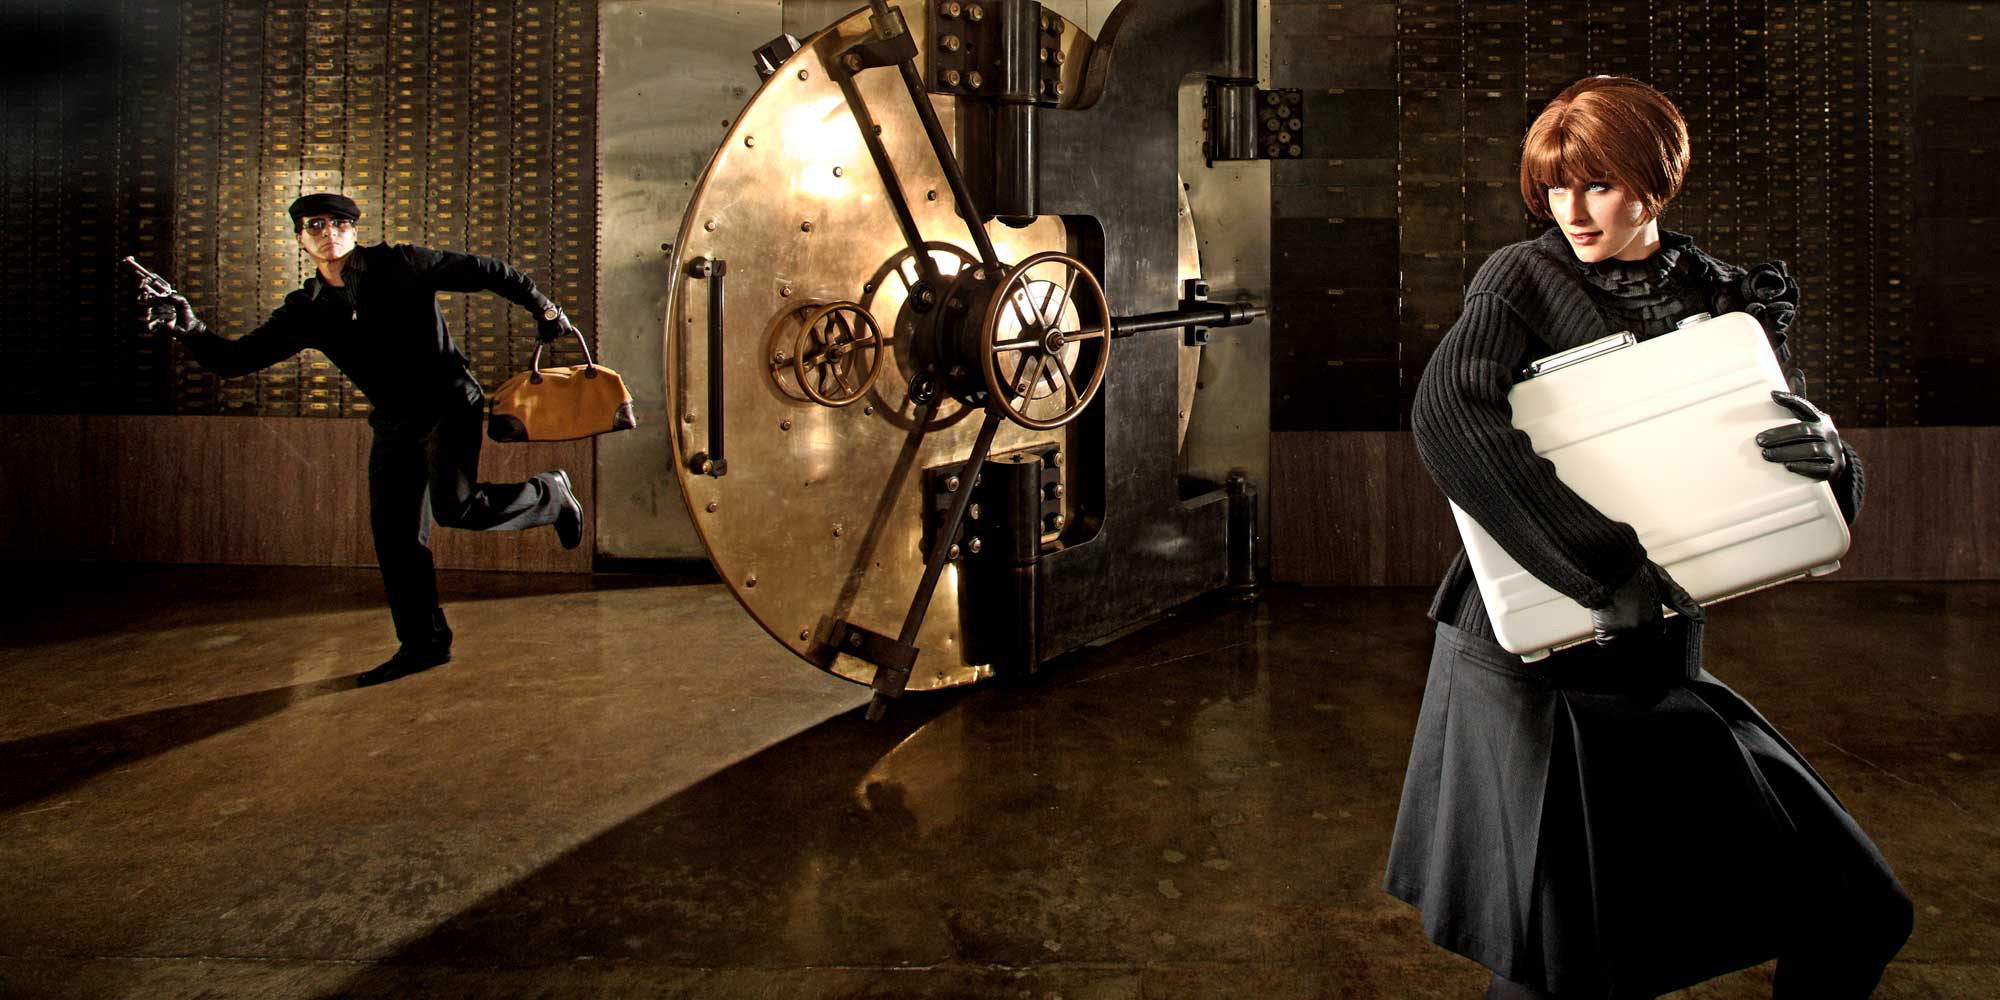 JOHNNY ANDREWS PHOTOGRAPHY :: COMMERCIAL :: Bank vault